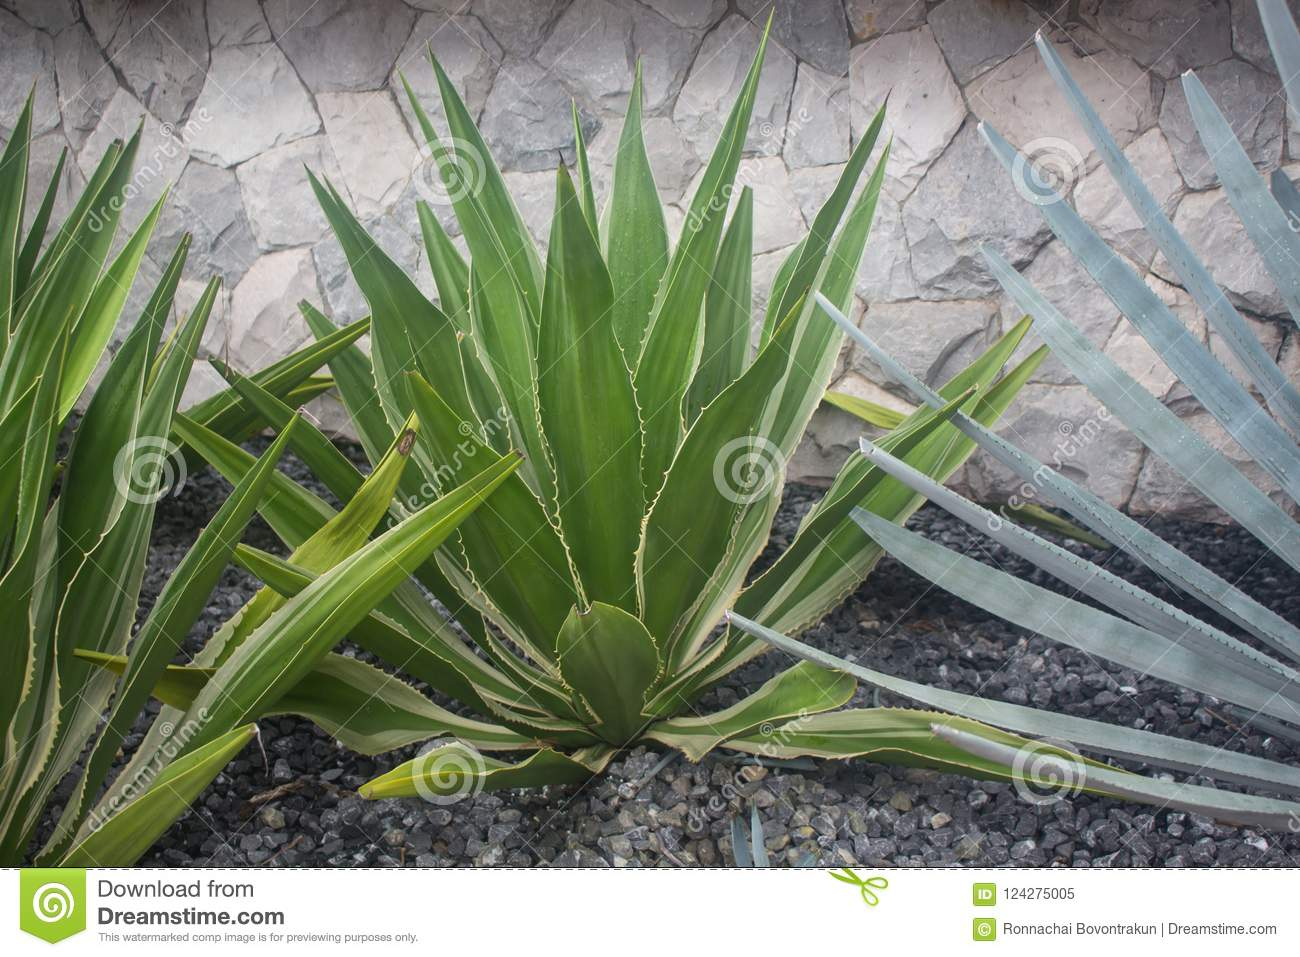 The mature leaves of snake plants